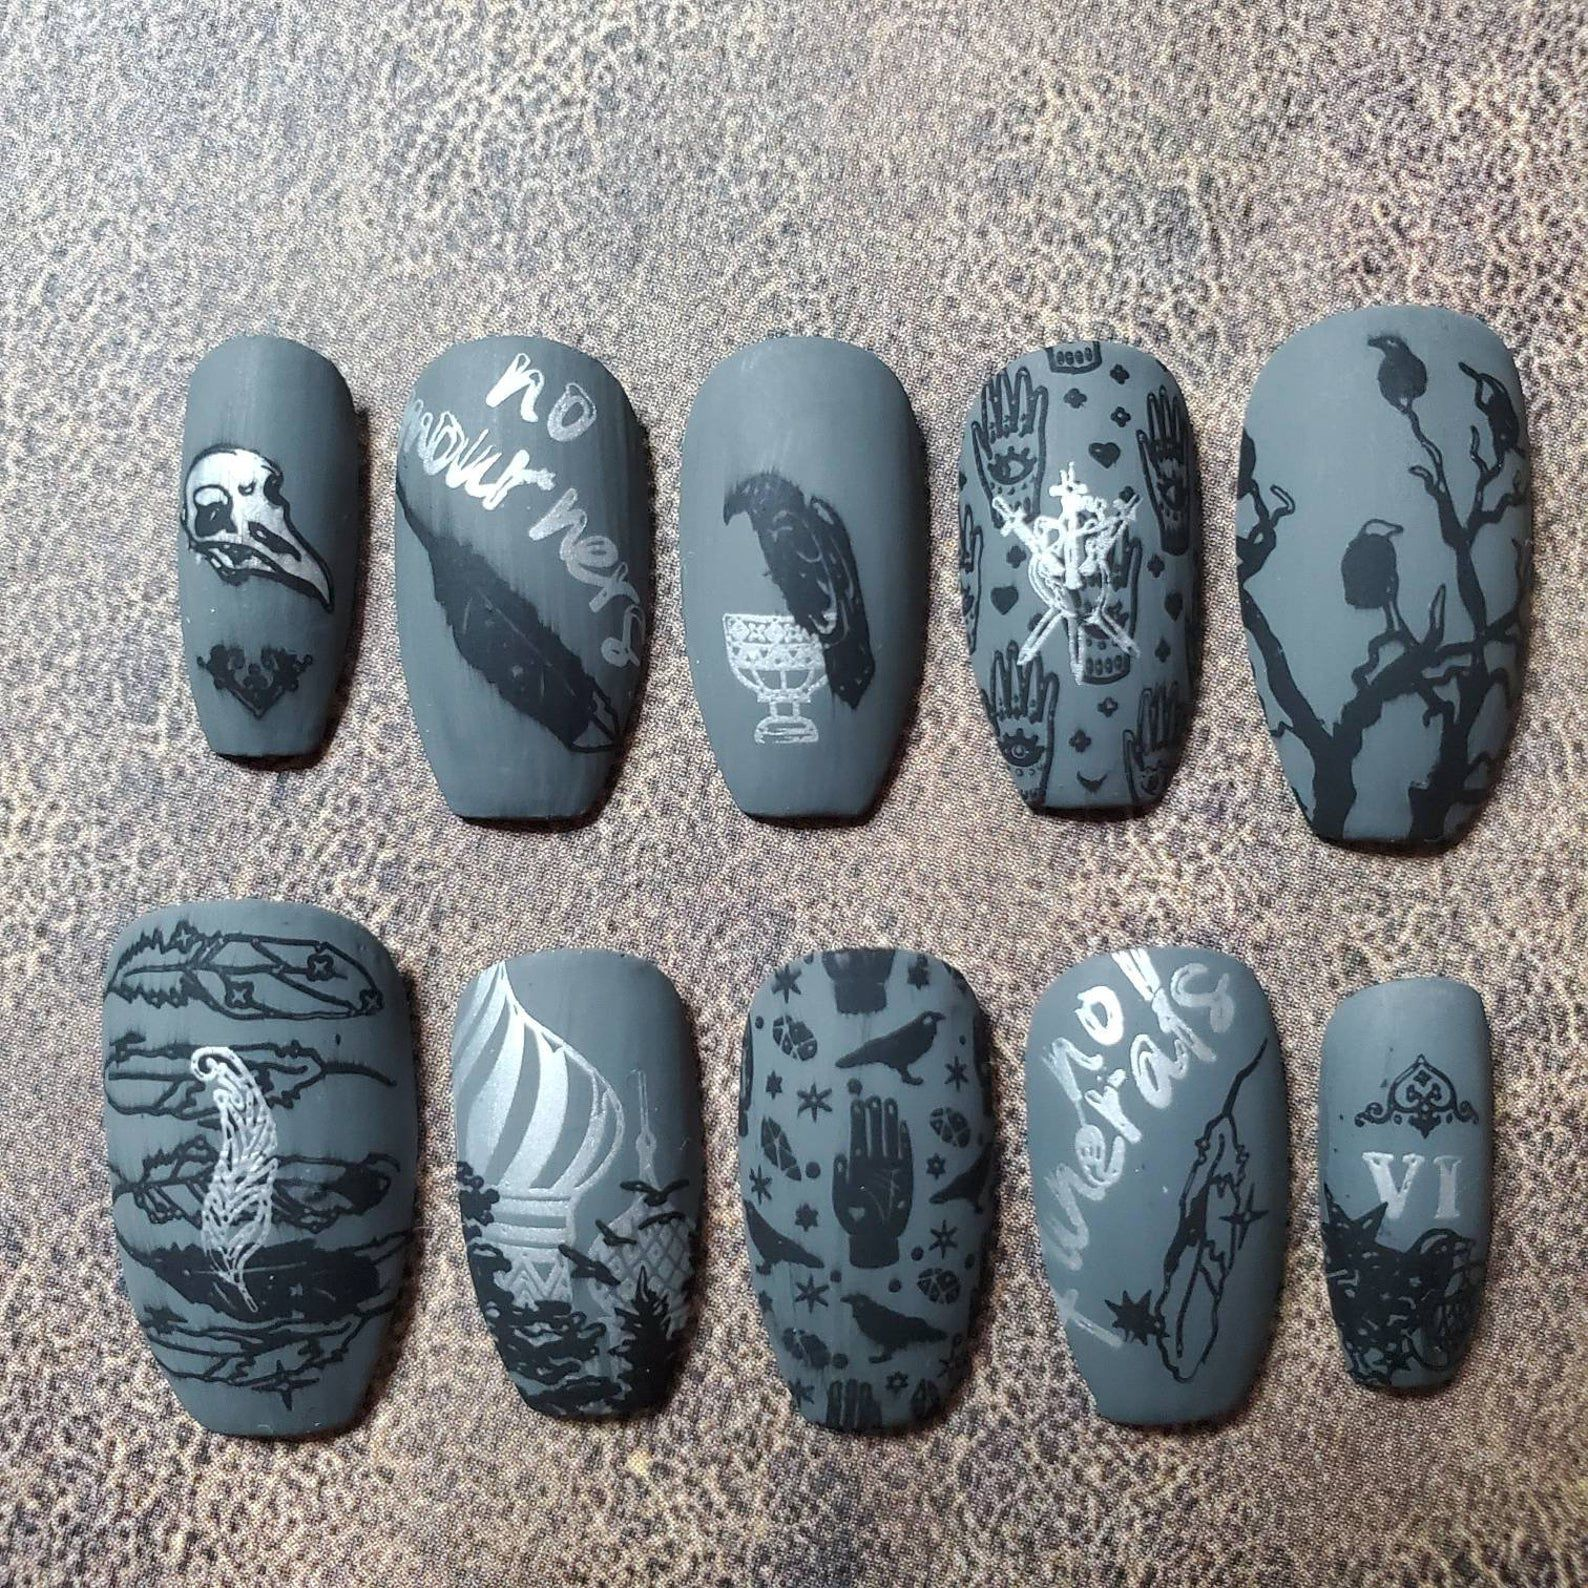 Image of nails featuring symbols and words from SIX OF CROWS